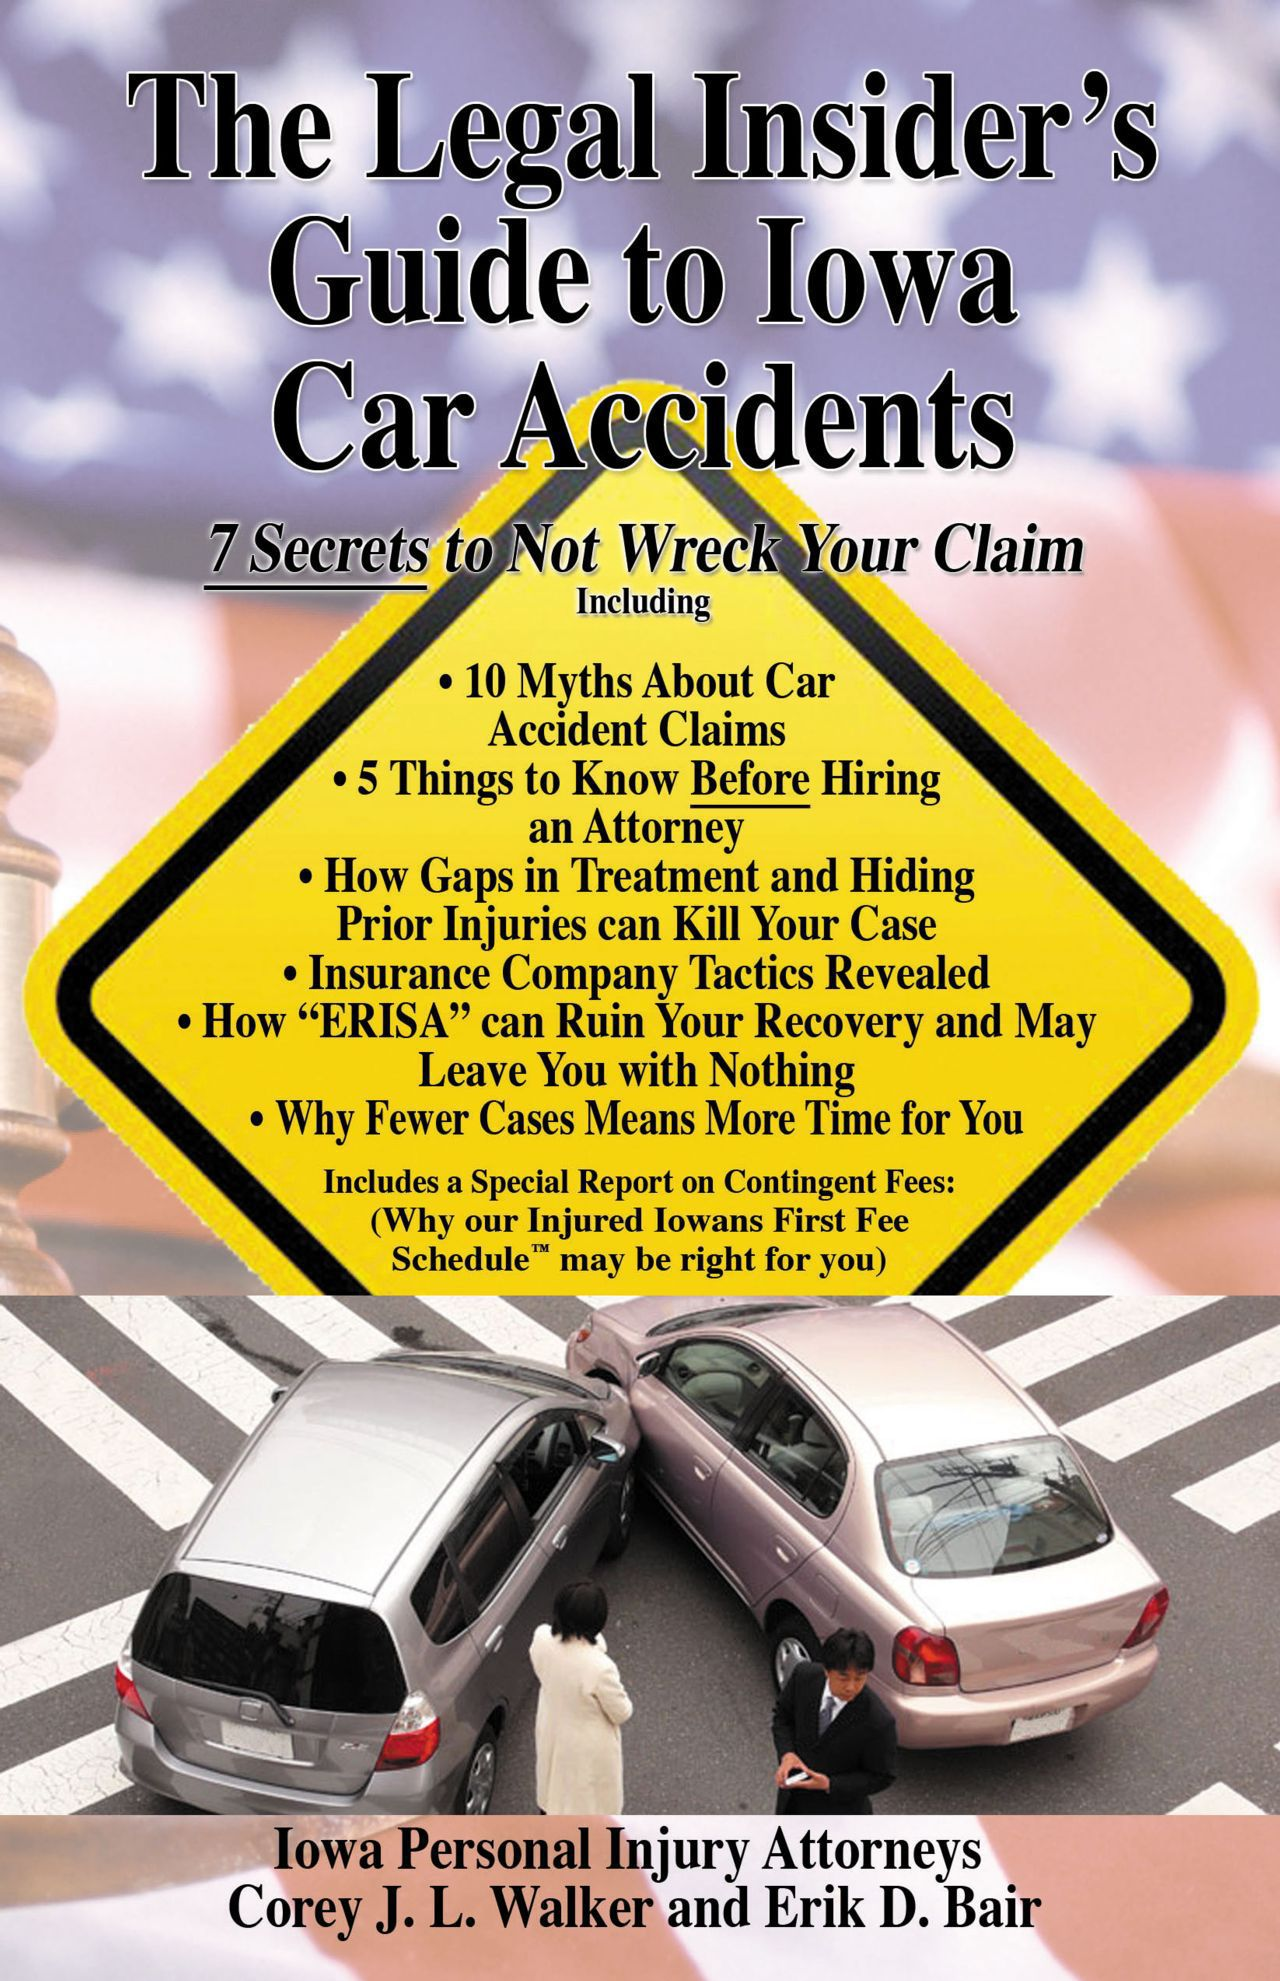 Legal Insider's guide to Iowa car accidents